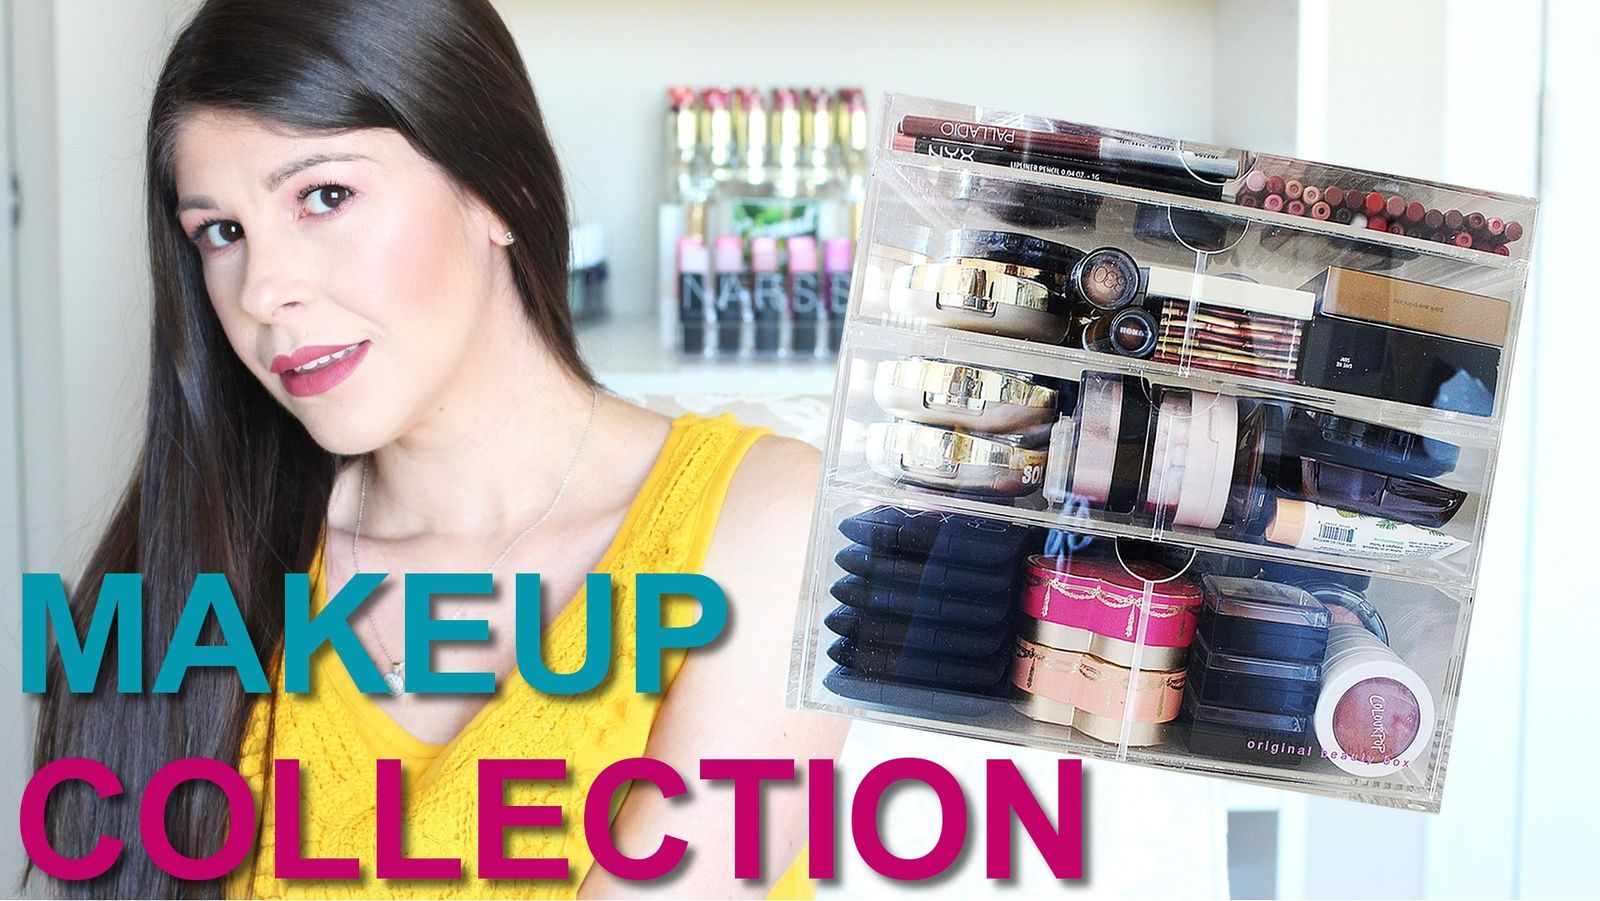 My Original Beauty Box Makeup Collection + Storage!